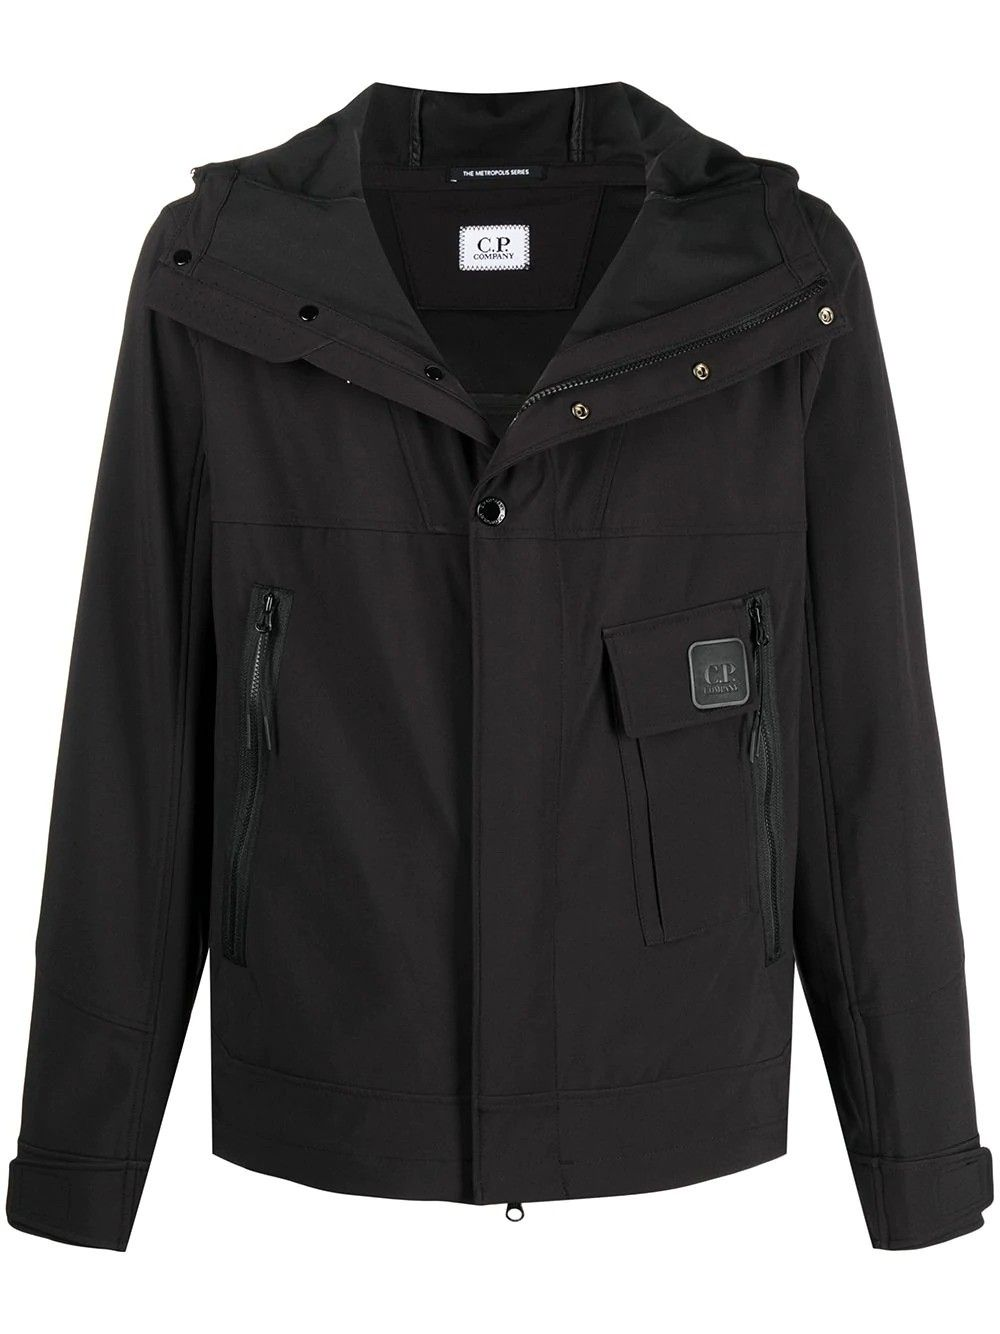 C.p. Company Jackets CP COMPANY MEN'S BLACK POLYESTER OUTERWEAR JACKET